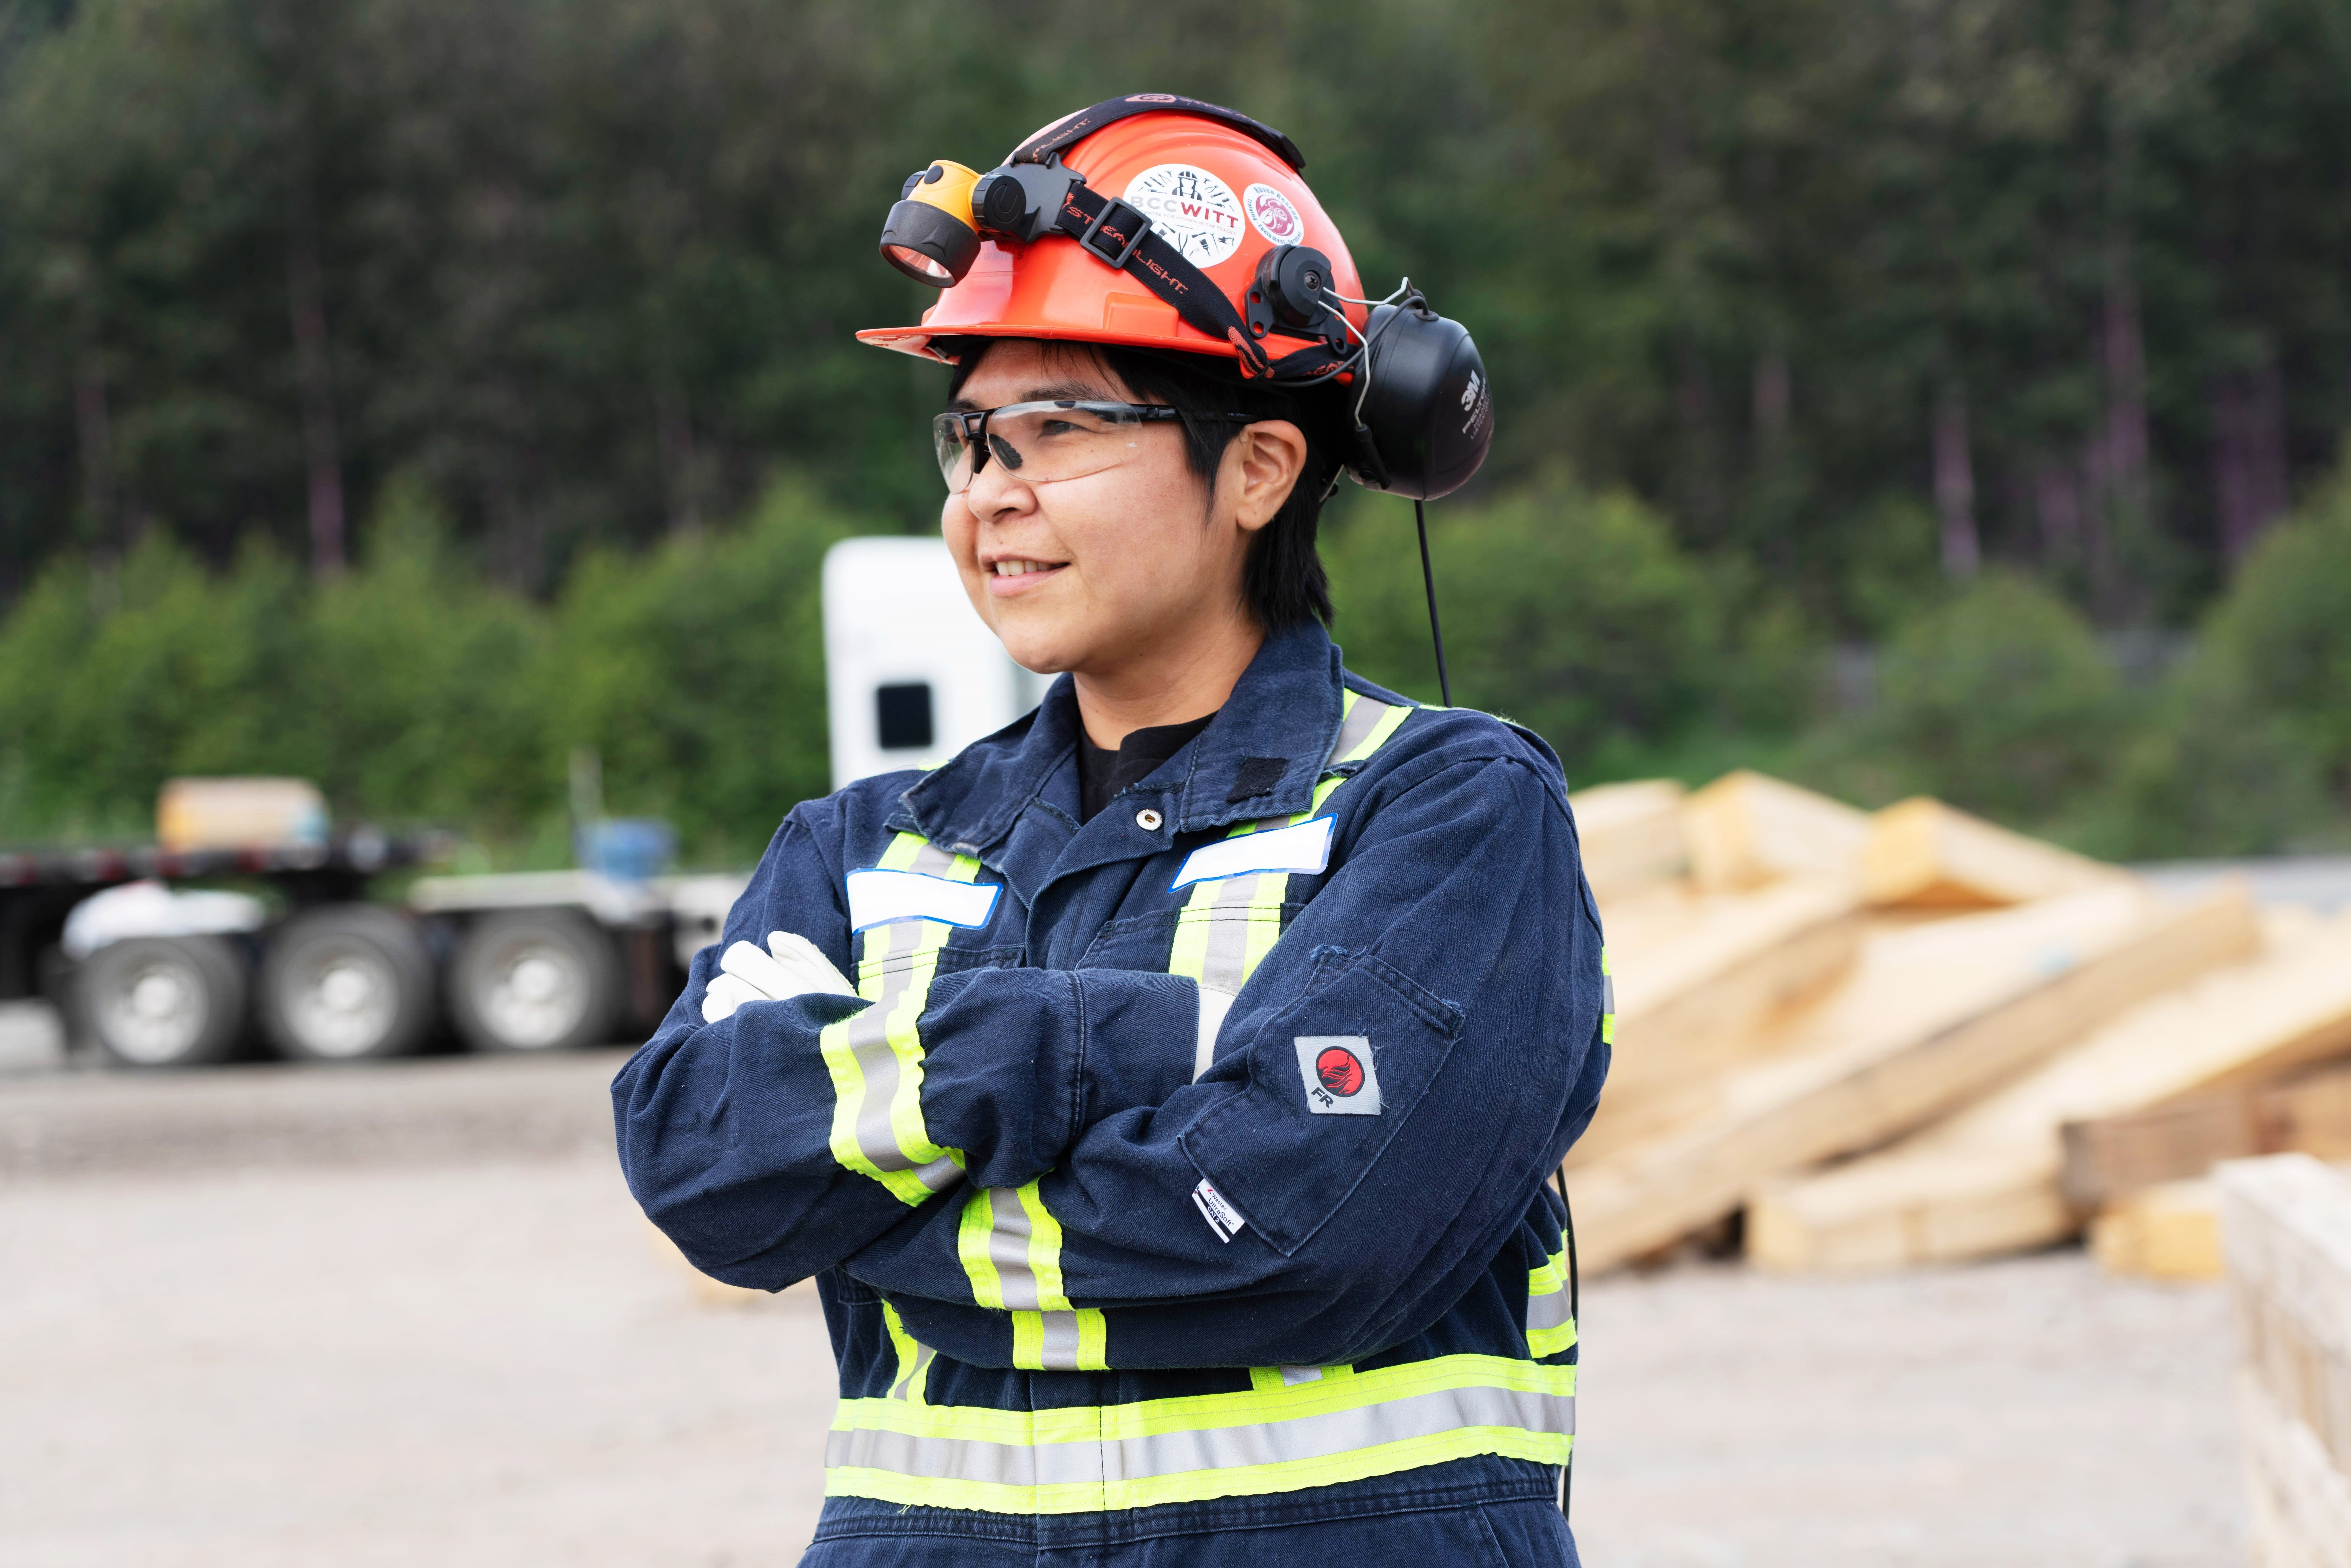 Adrienne Nisyok, an Indigenous woman living in Kitimat, B.C., has been an electrician for 22 years.